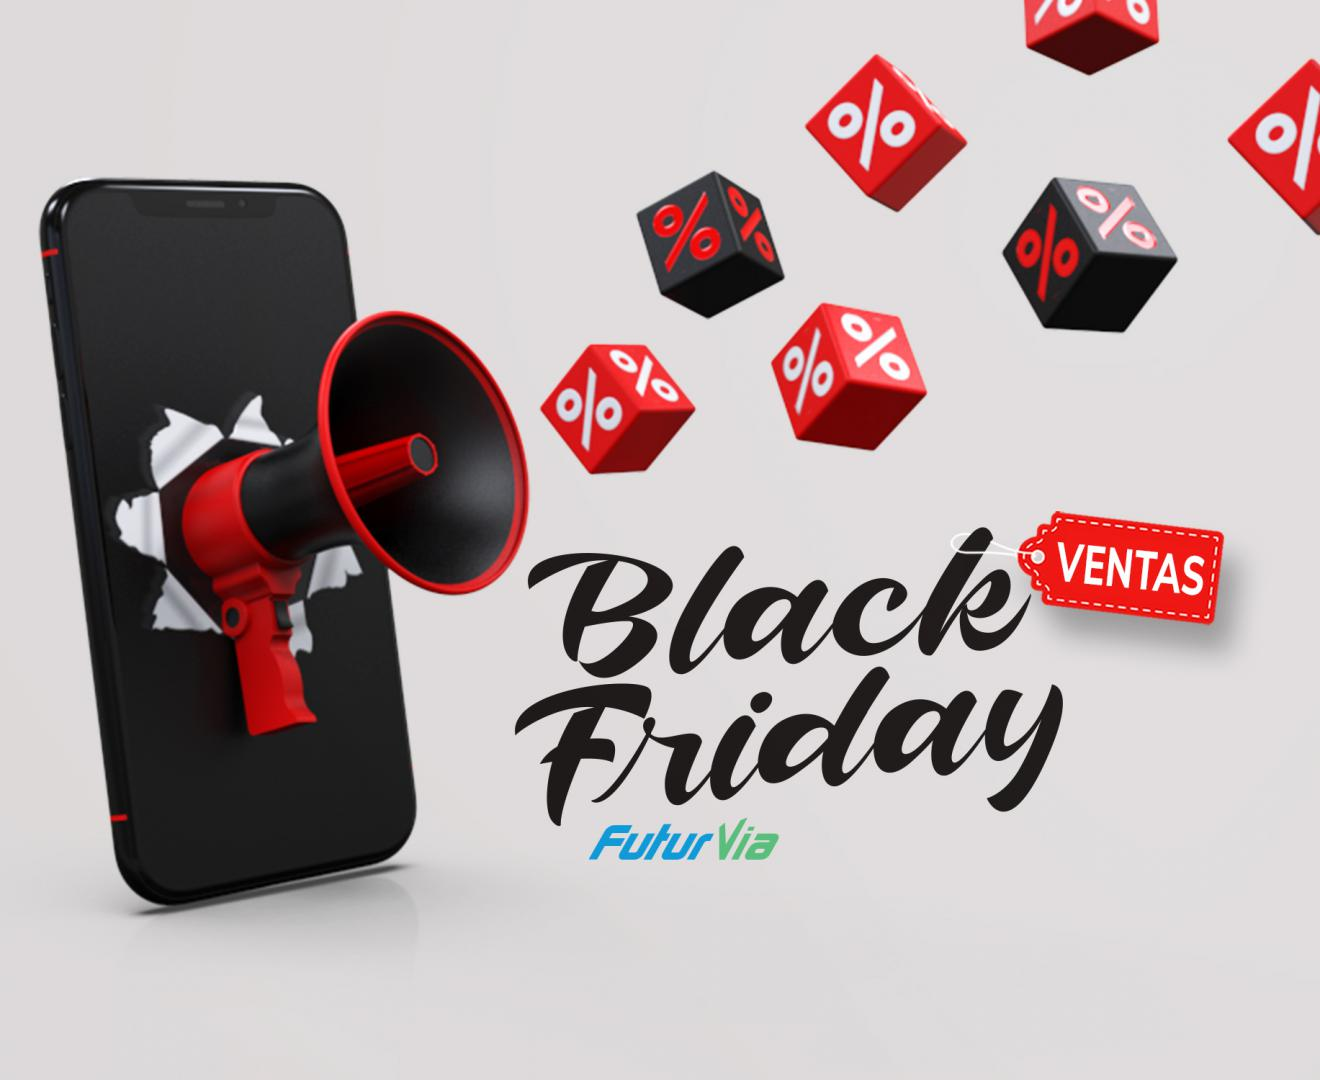 Black Friday 2021, ofertas y fechas